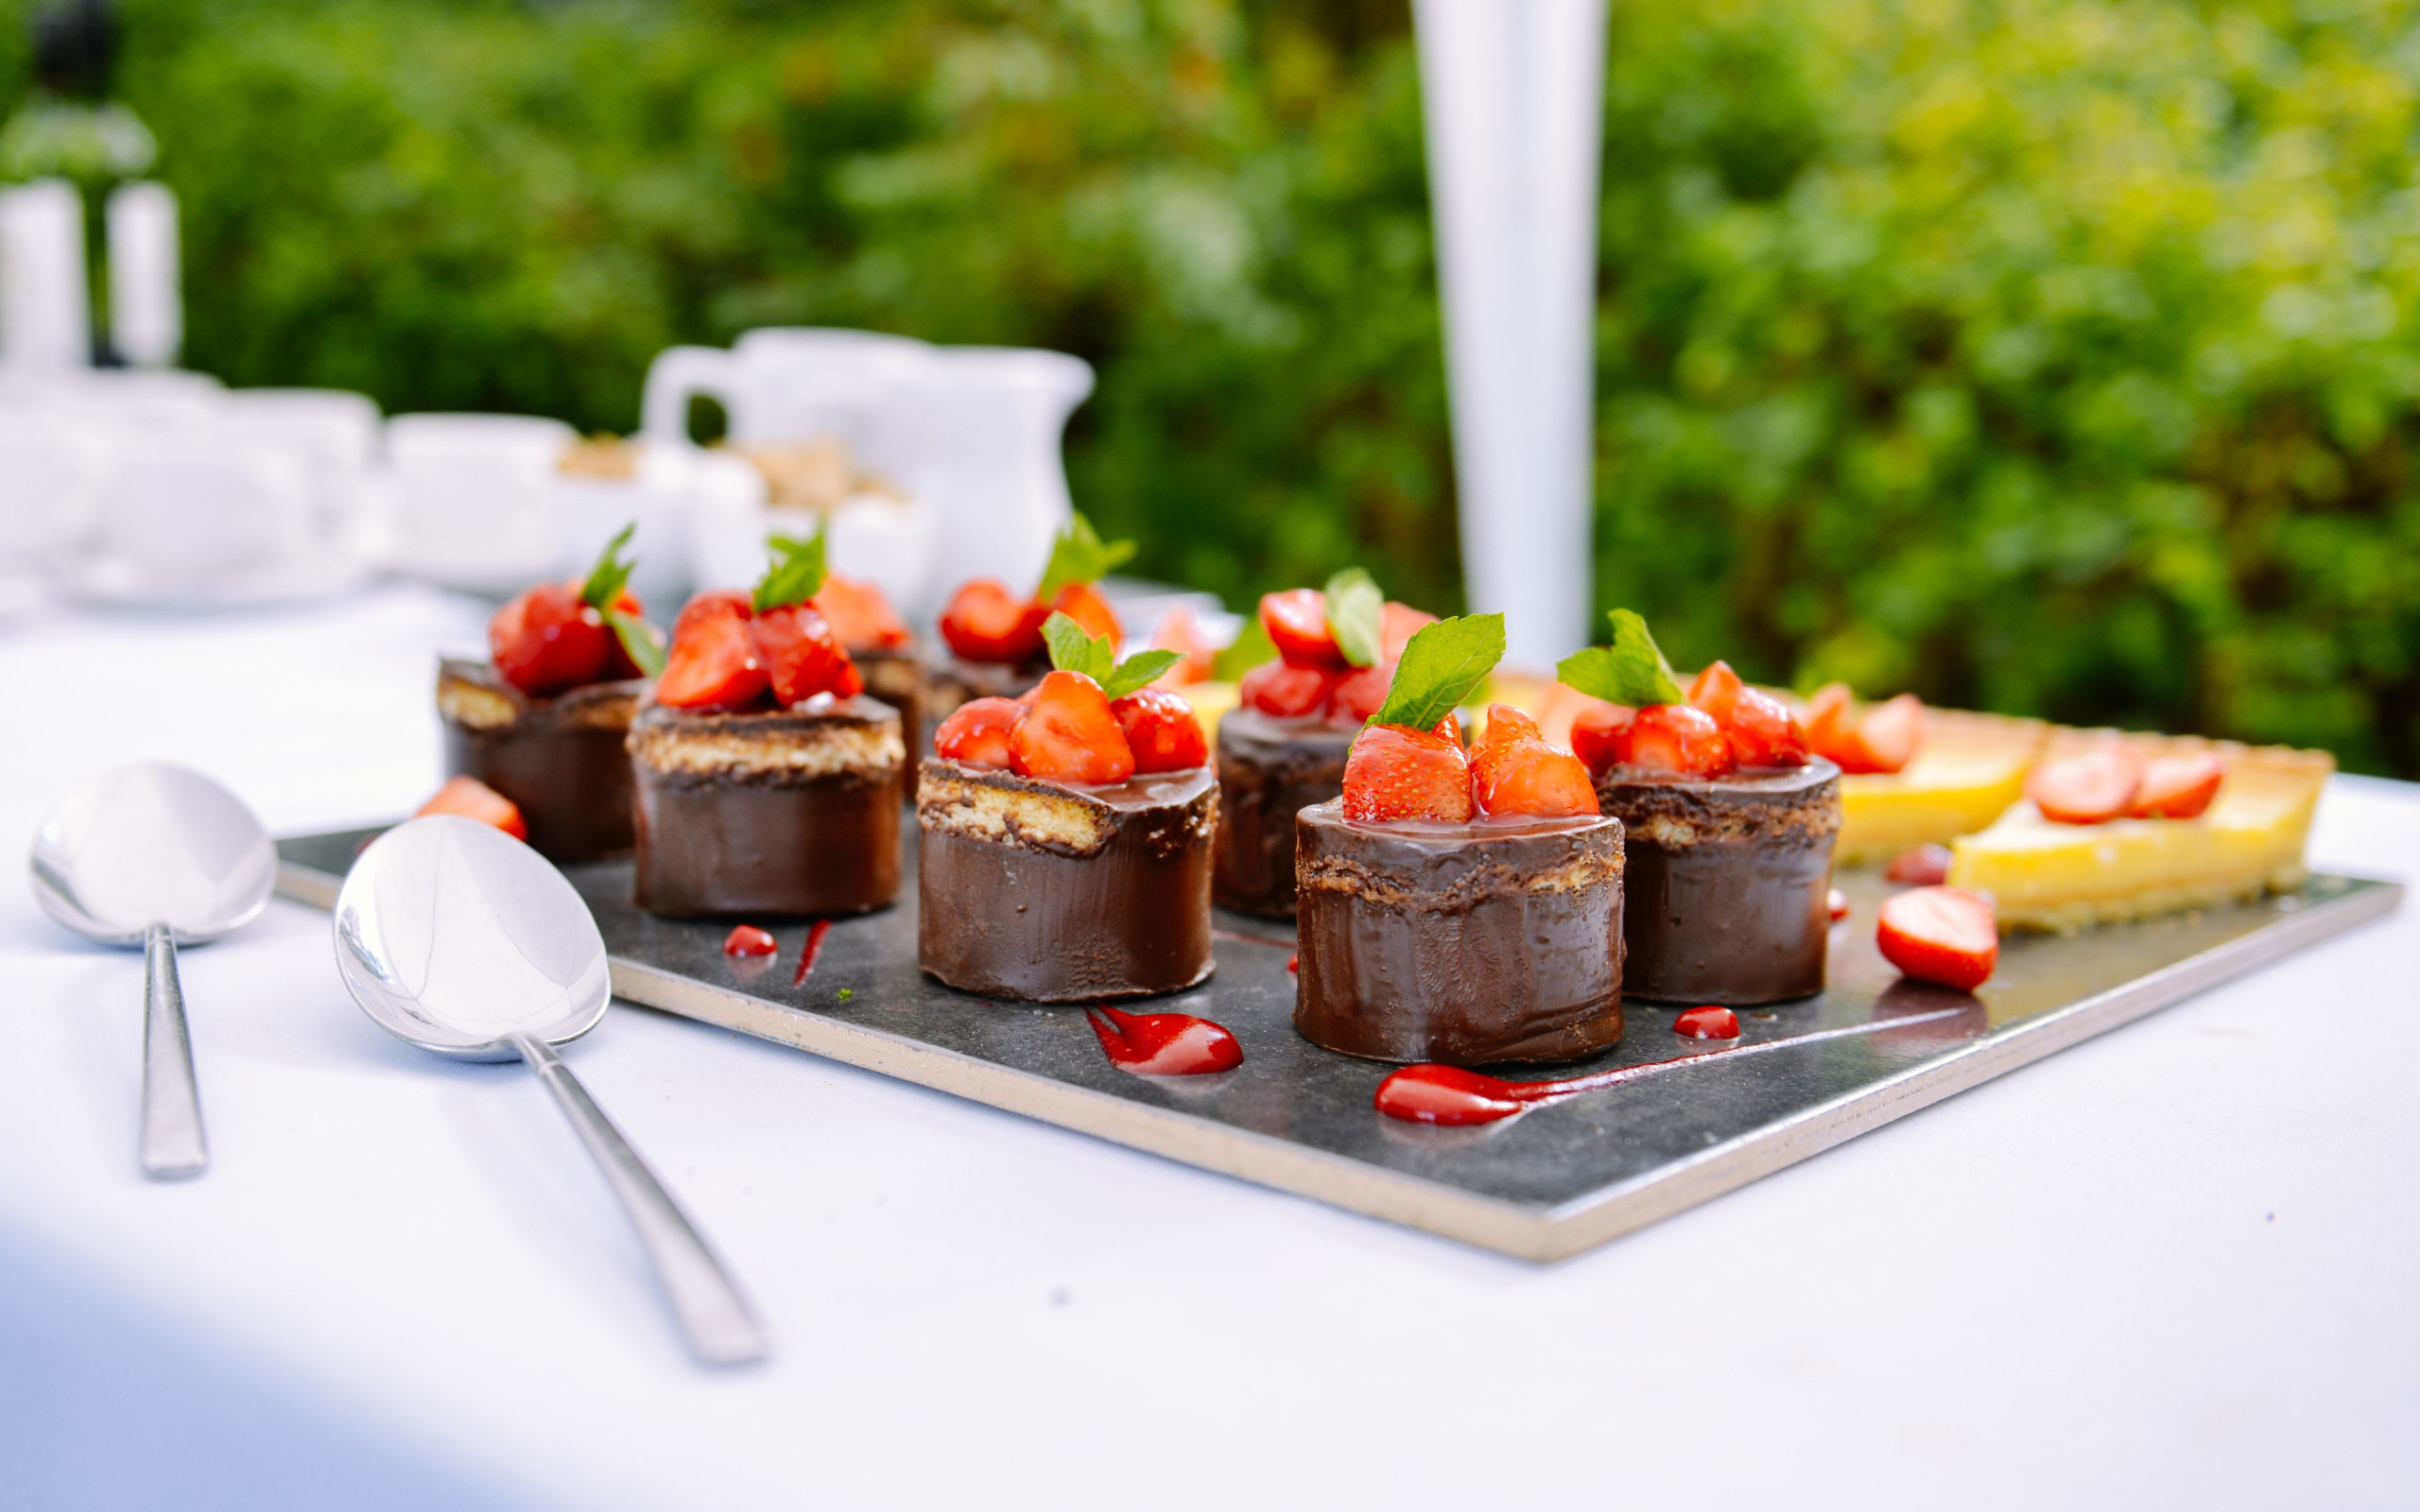 Chocolate cakes with strawberries | 2560x1600 wallpaper